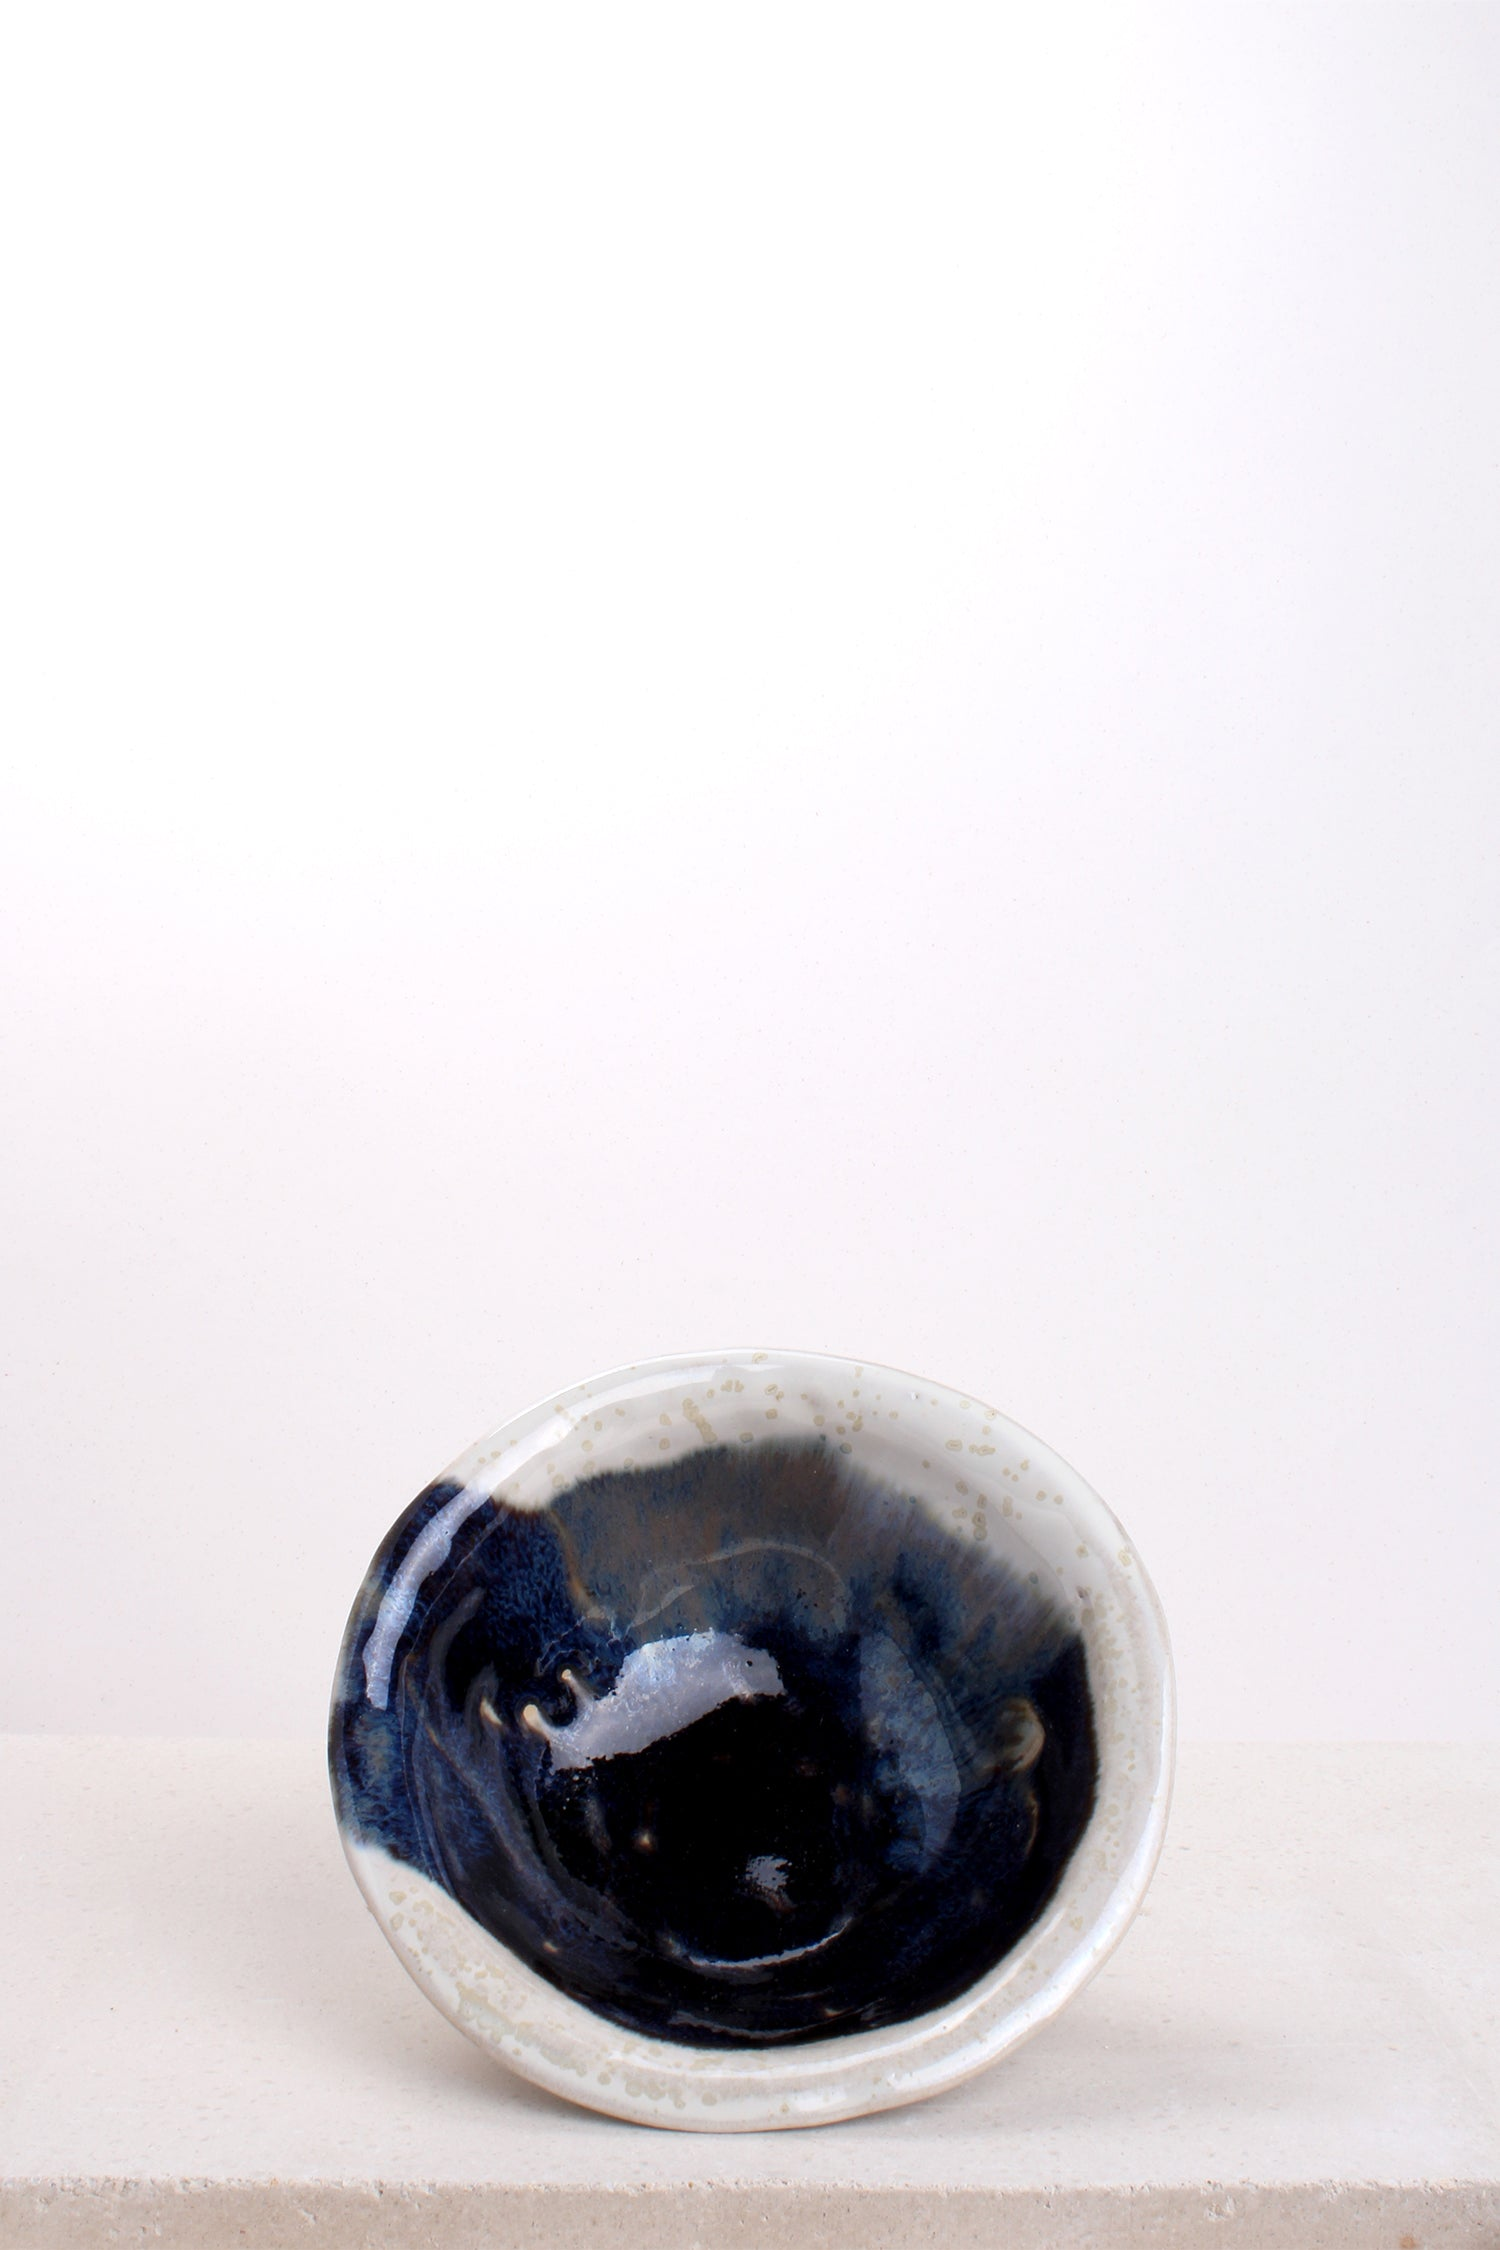 STAMPED BOWLS - WHITE SANDSTONE/ BLUE BLACK